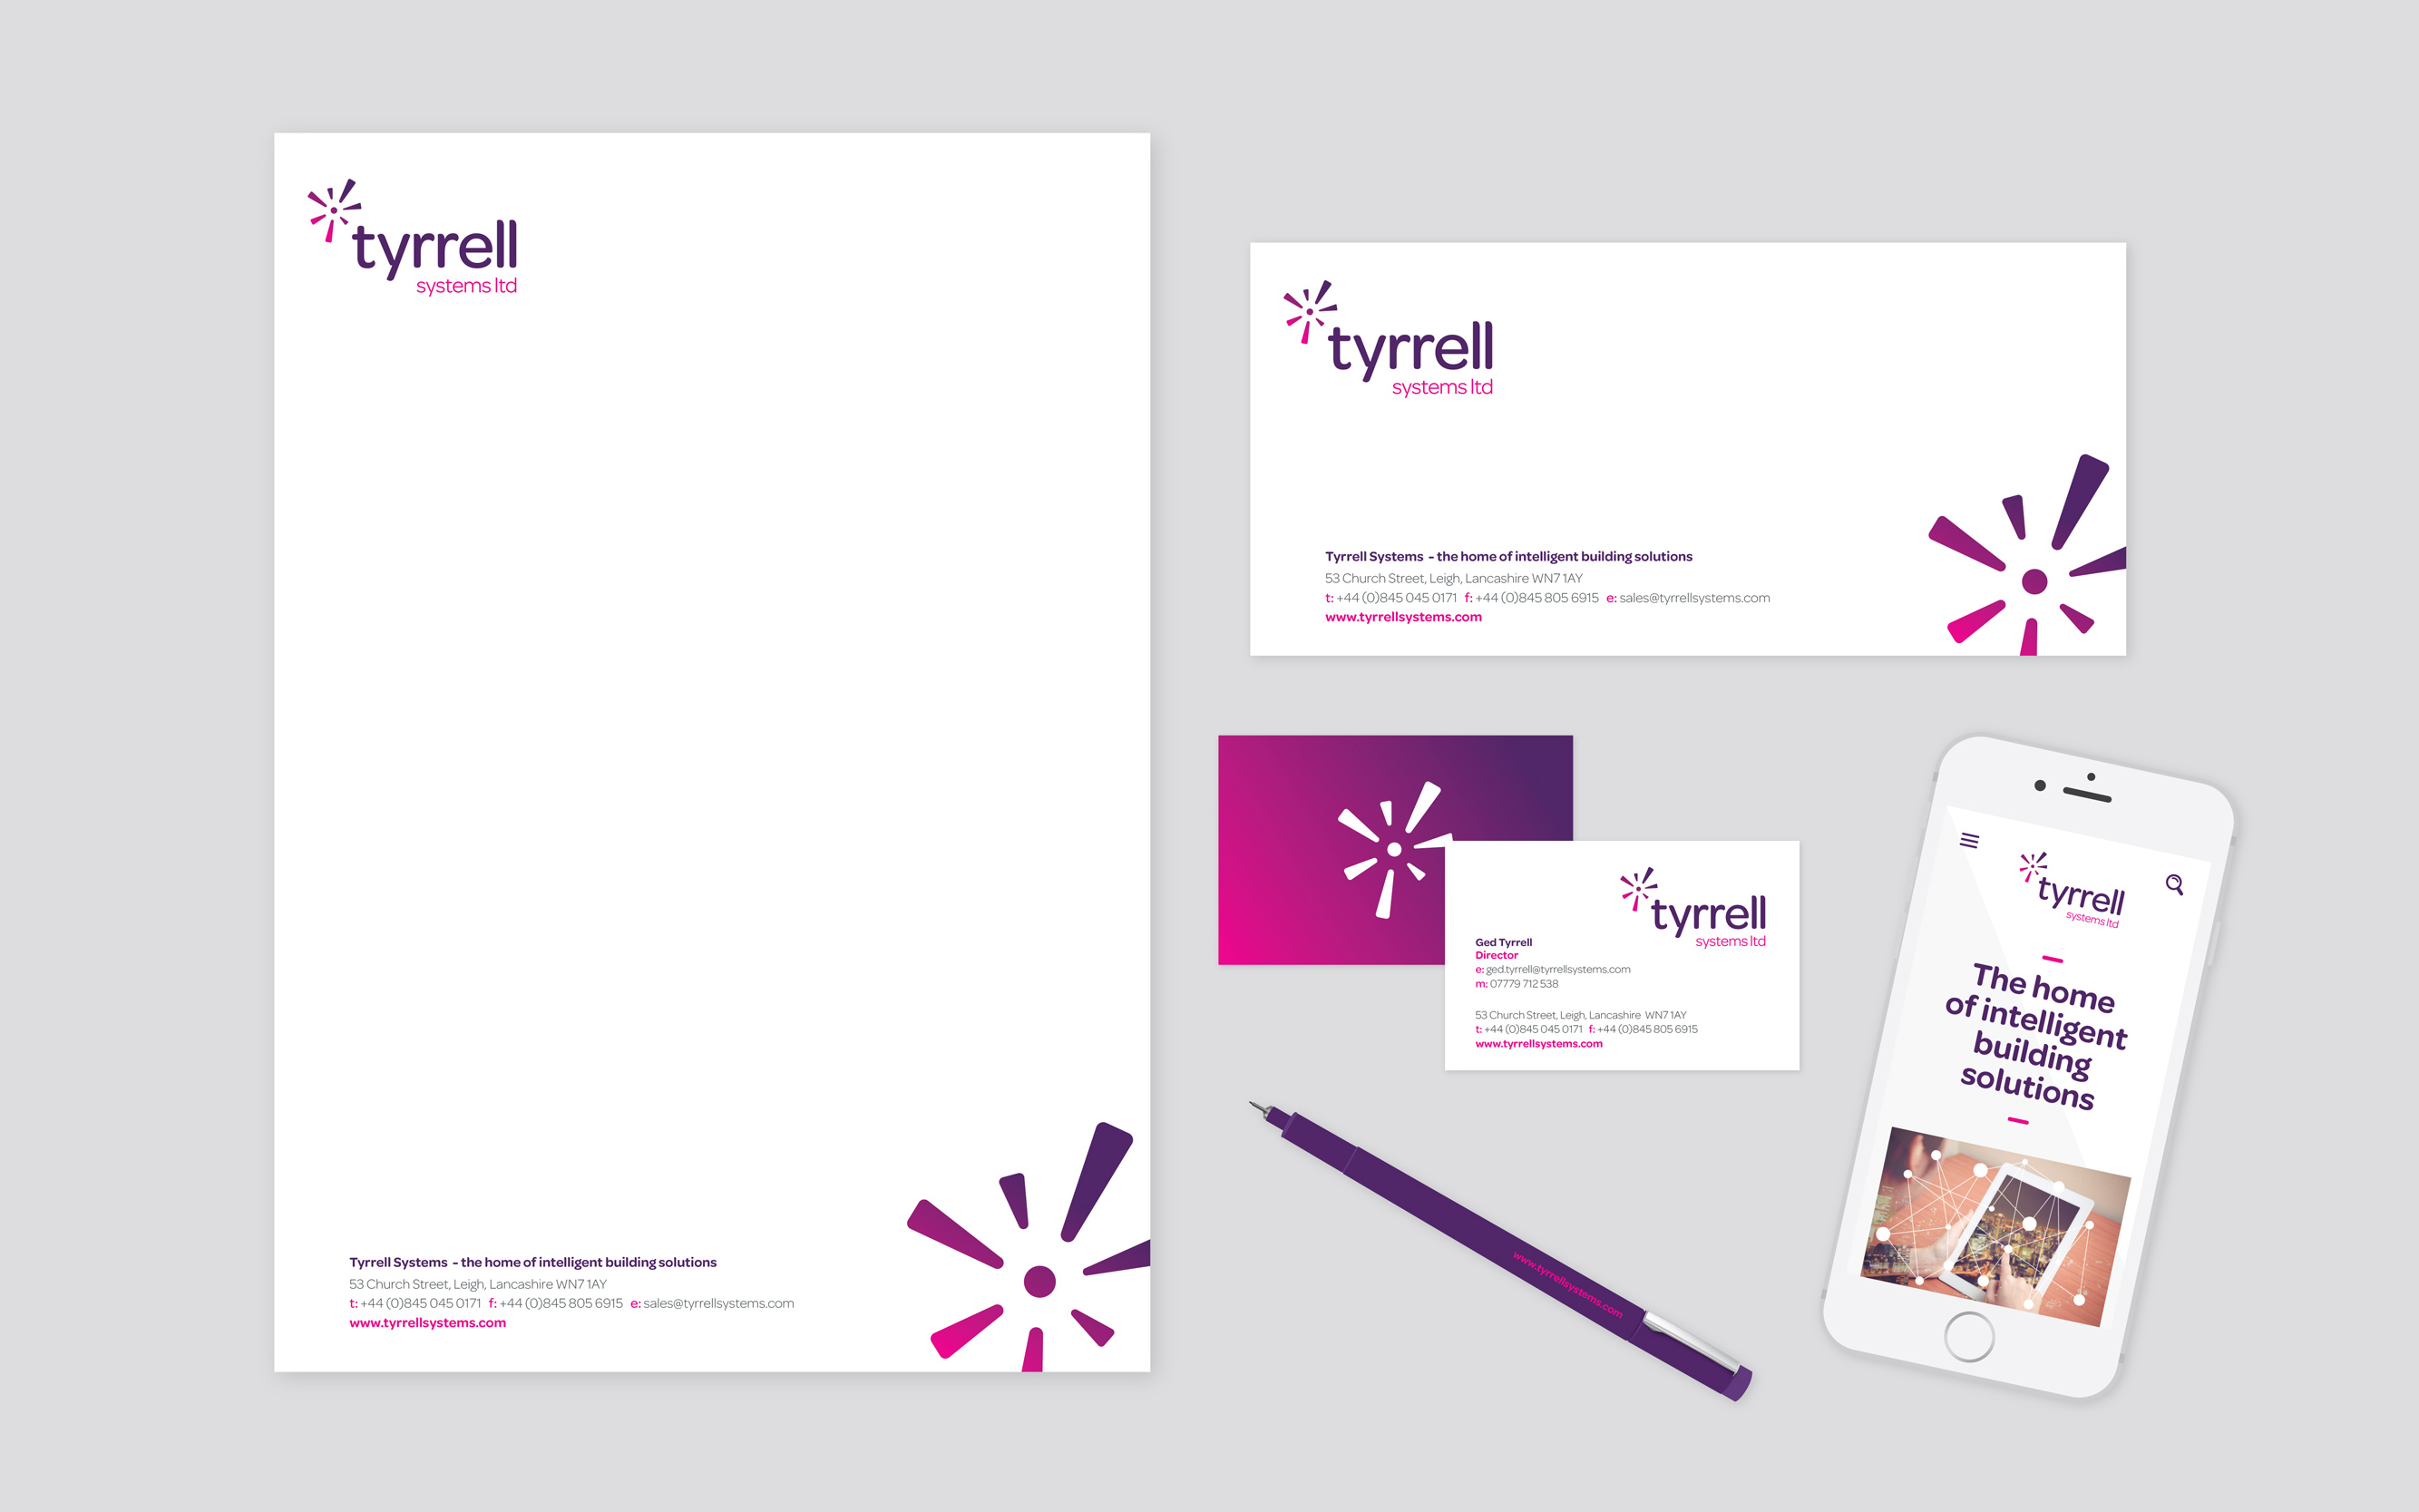 tyrrell-stationery